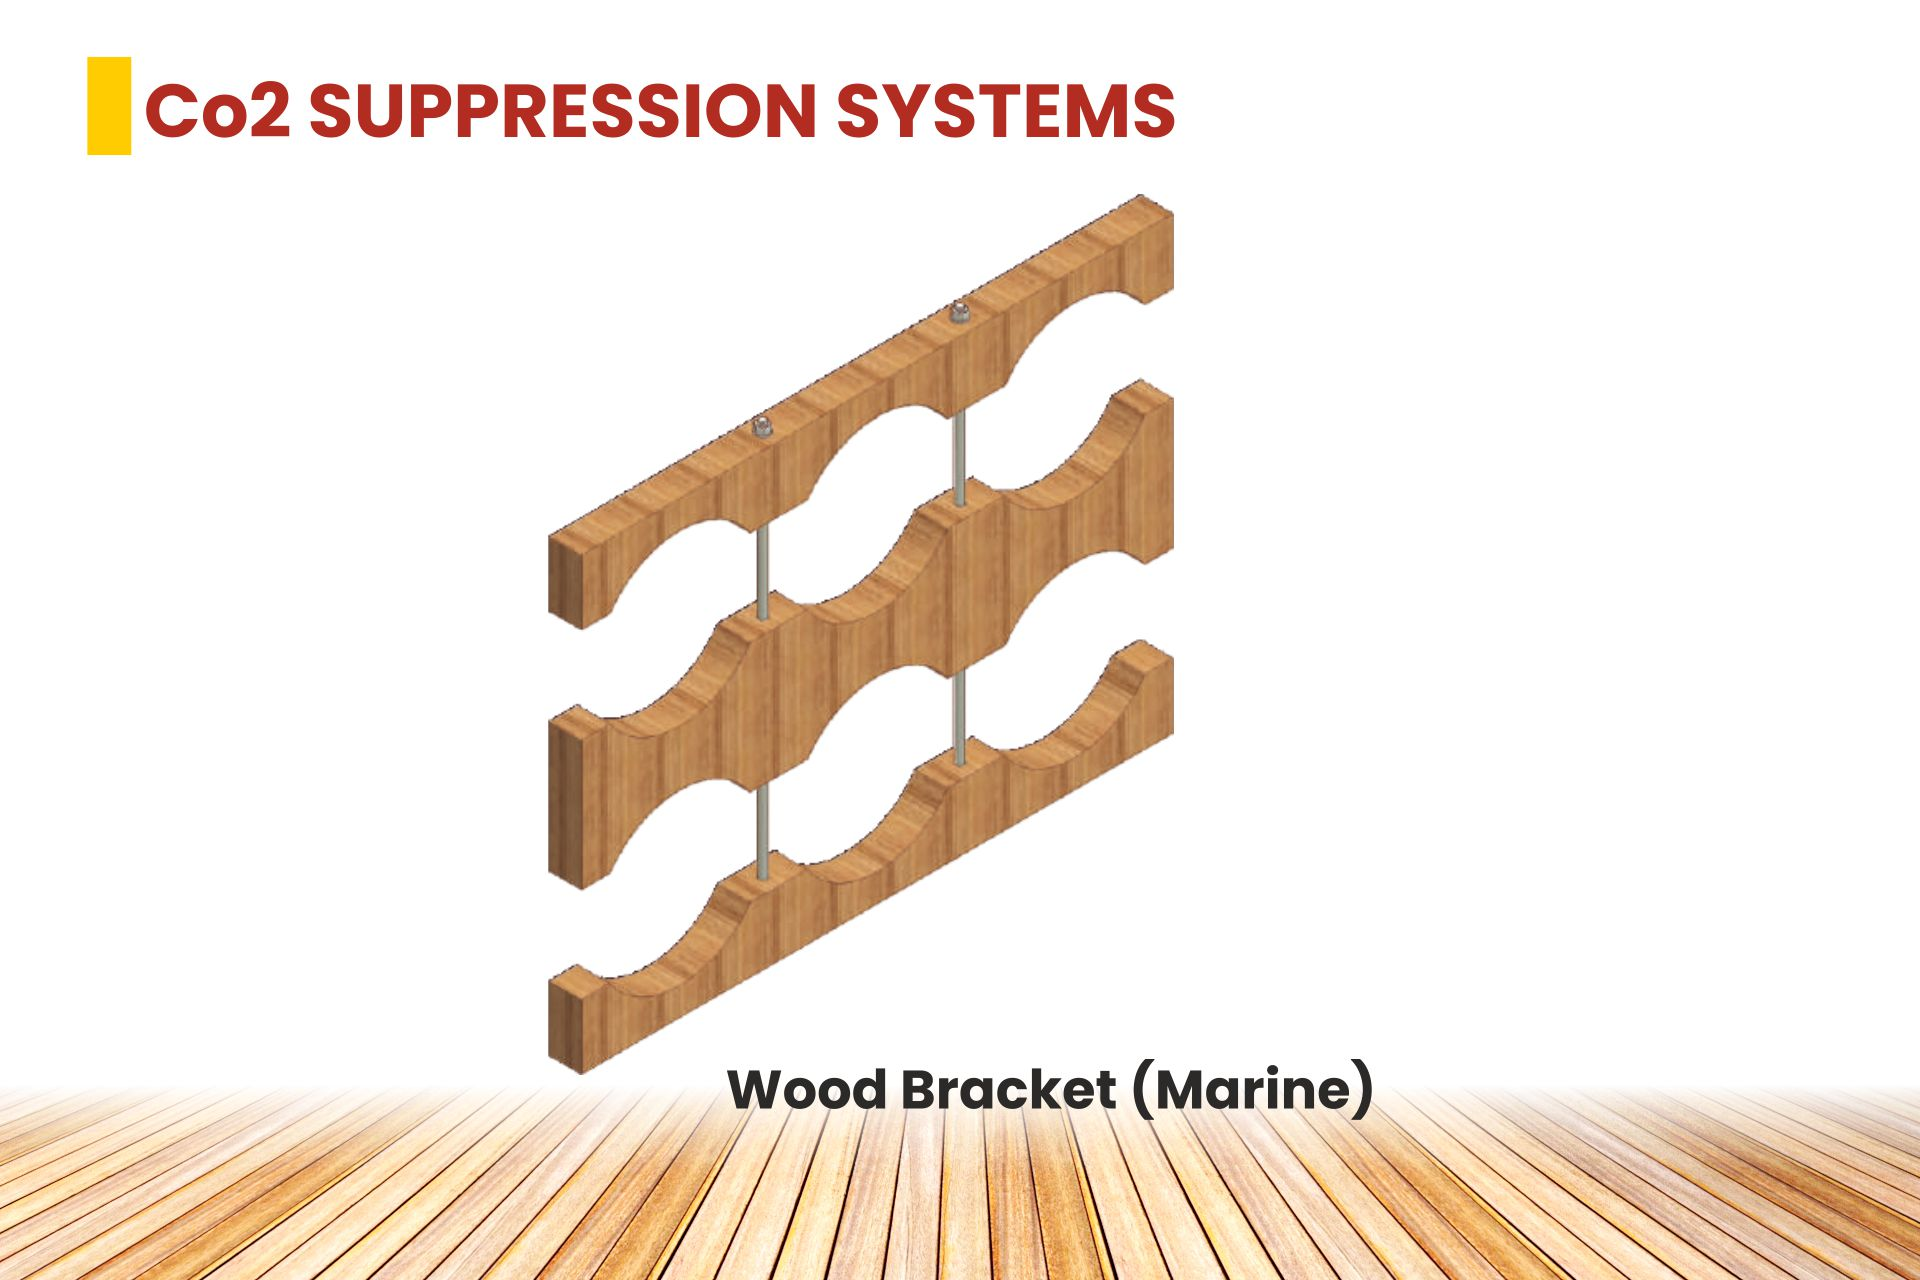 Co2 SUPPRESSION SYSTEM Product 3